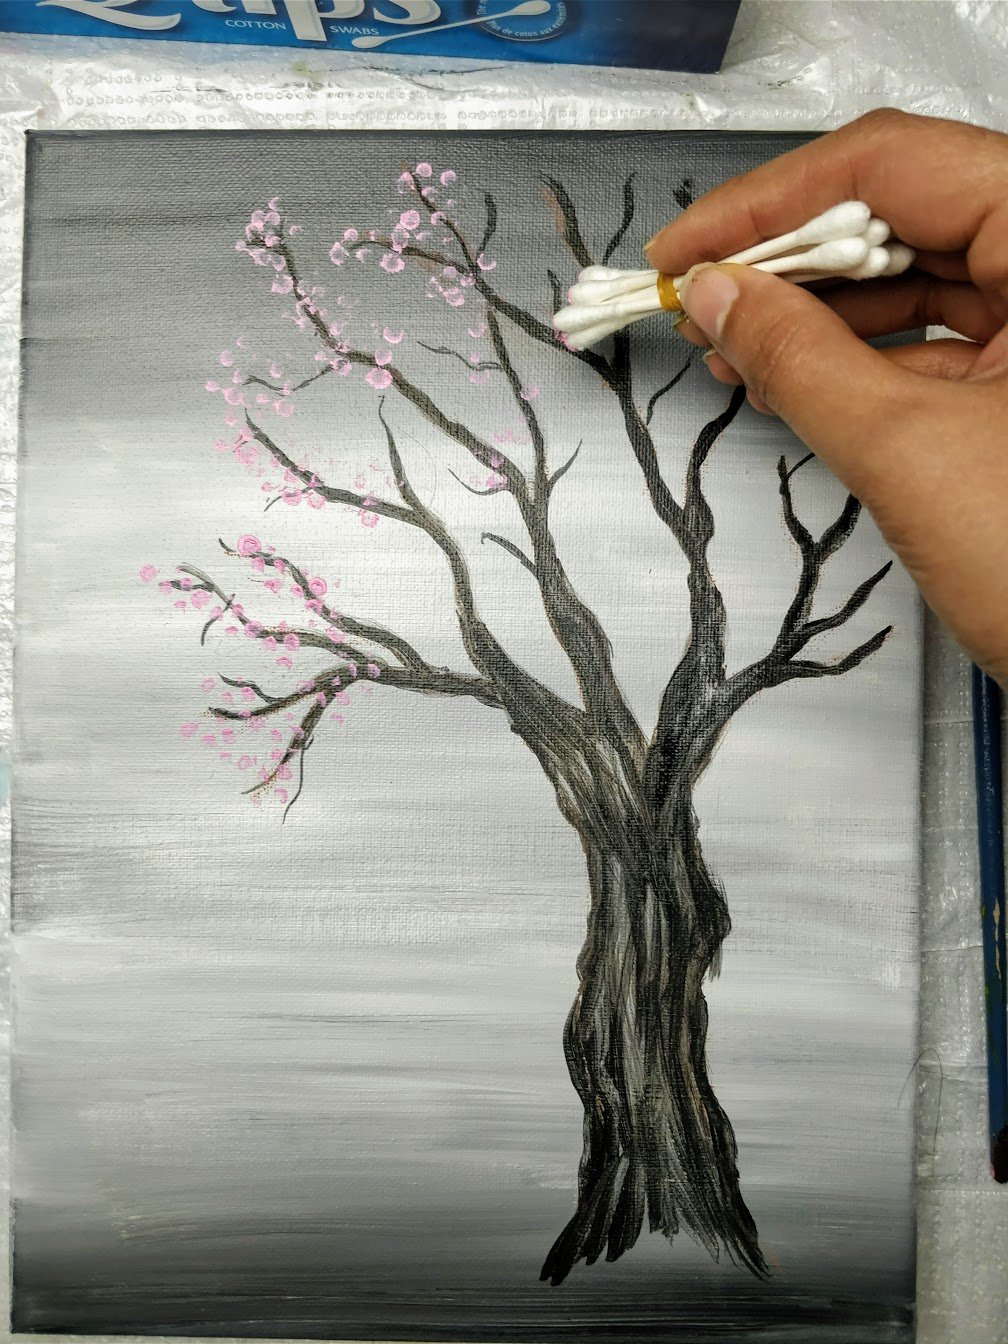 painting a cherry blossom tree with cotton swab